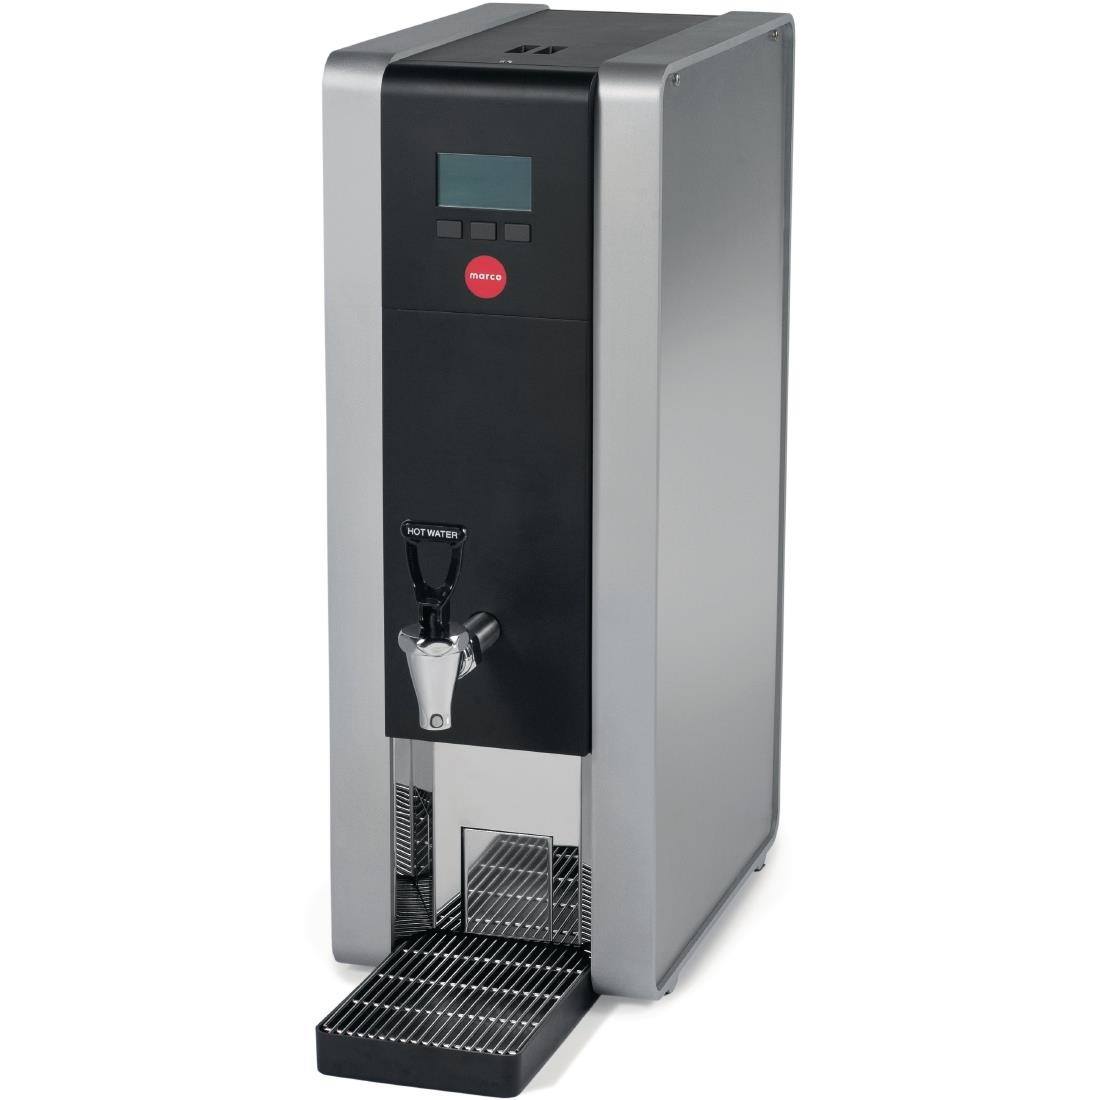 Image of Marco 8Ltr Auto-Fill Push-Button Water Boiler T8